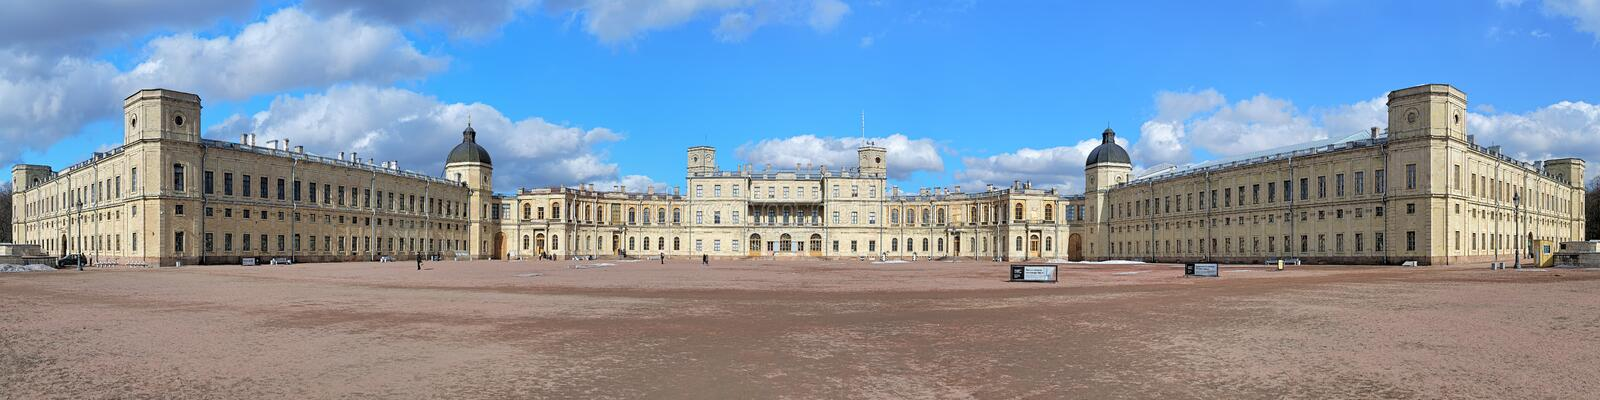 Big panorama of the Great Gatchina Palace, Russia royalty free stock image